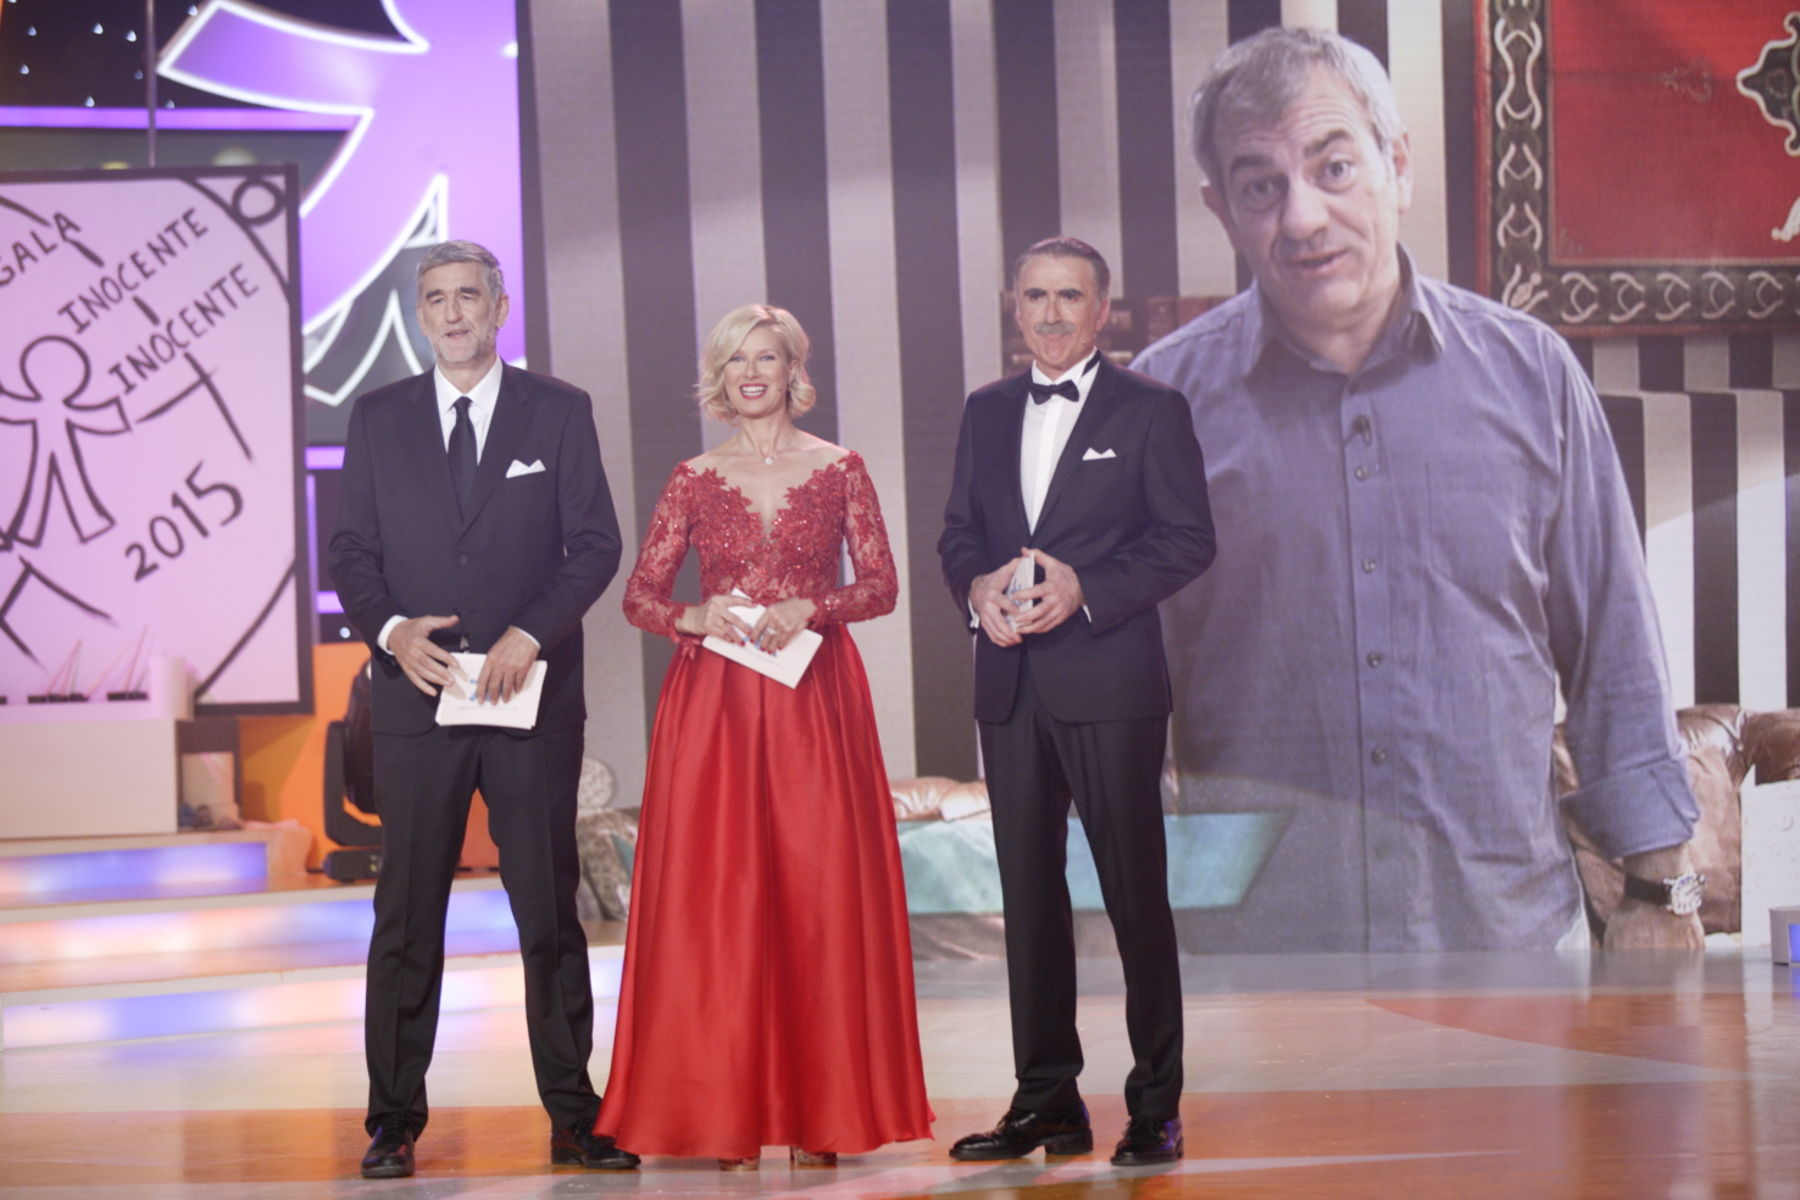 Gala Inocente, Inocente 2015 raises 1,150,000 euros to help children with Cerebral Palsy and Down Syndrome